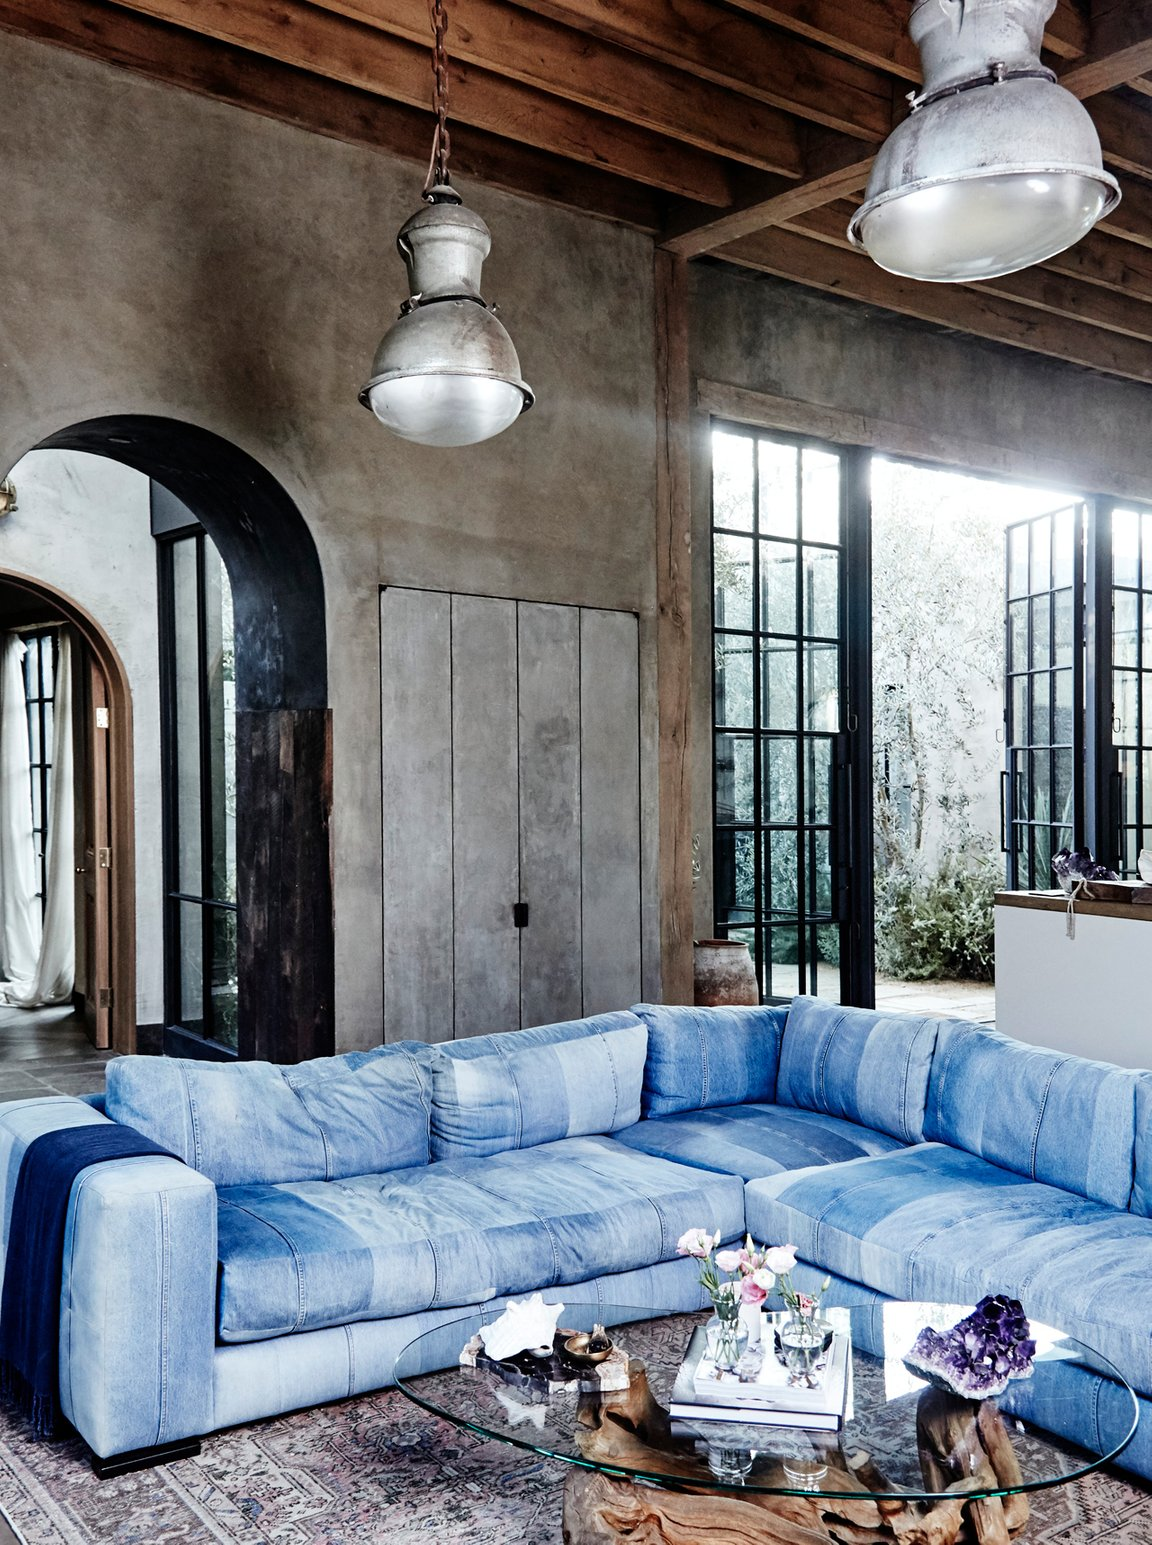 Industrial loft apartment featuring a large blue denim sectional couch.